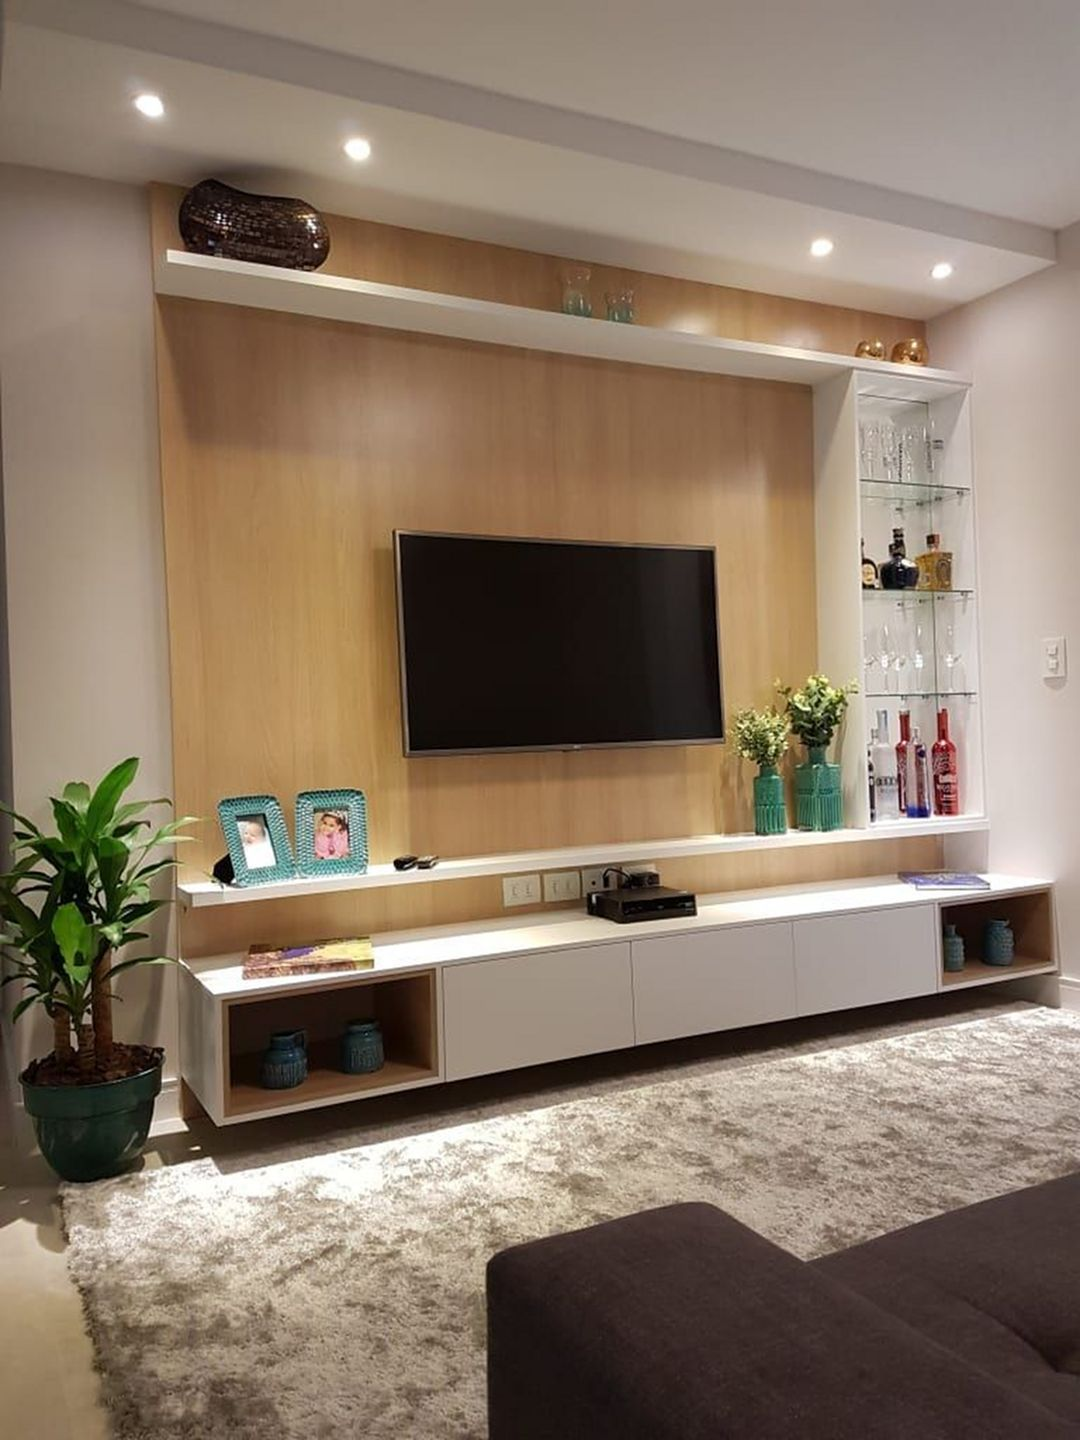 35 Amazing Wall Tv Cabinet Designs For Cozy Family Room Living